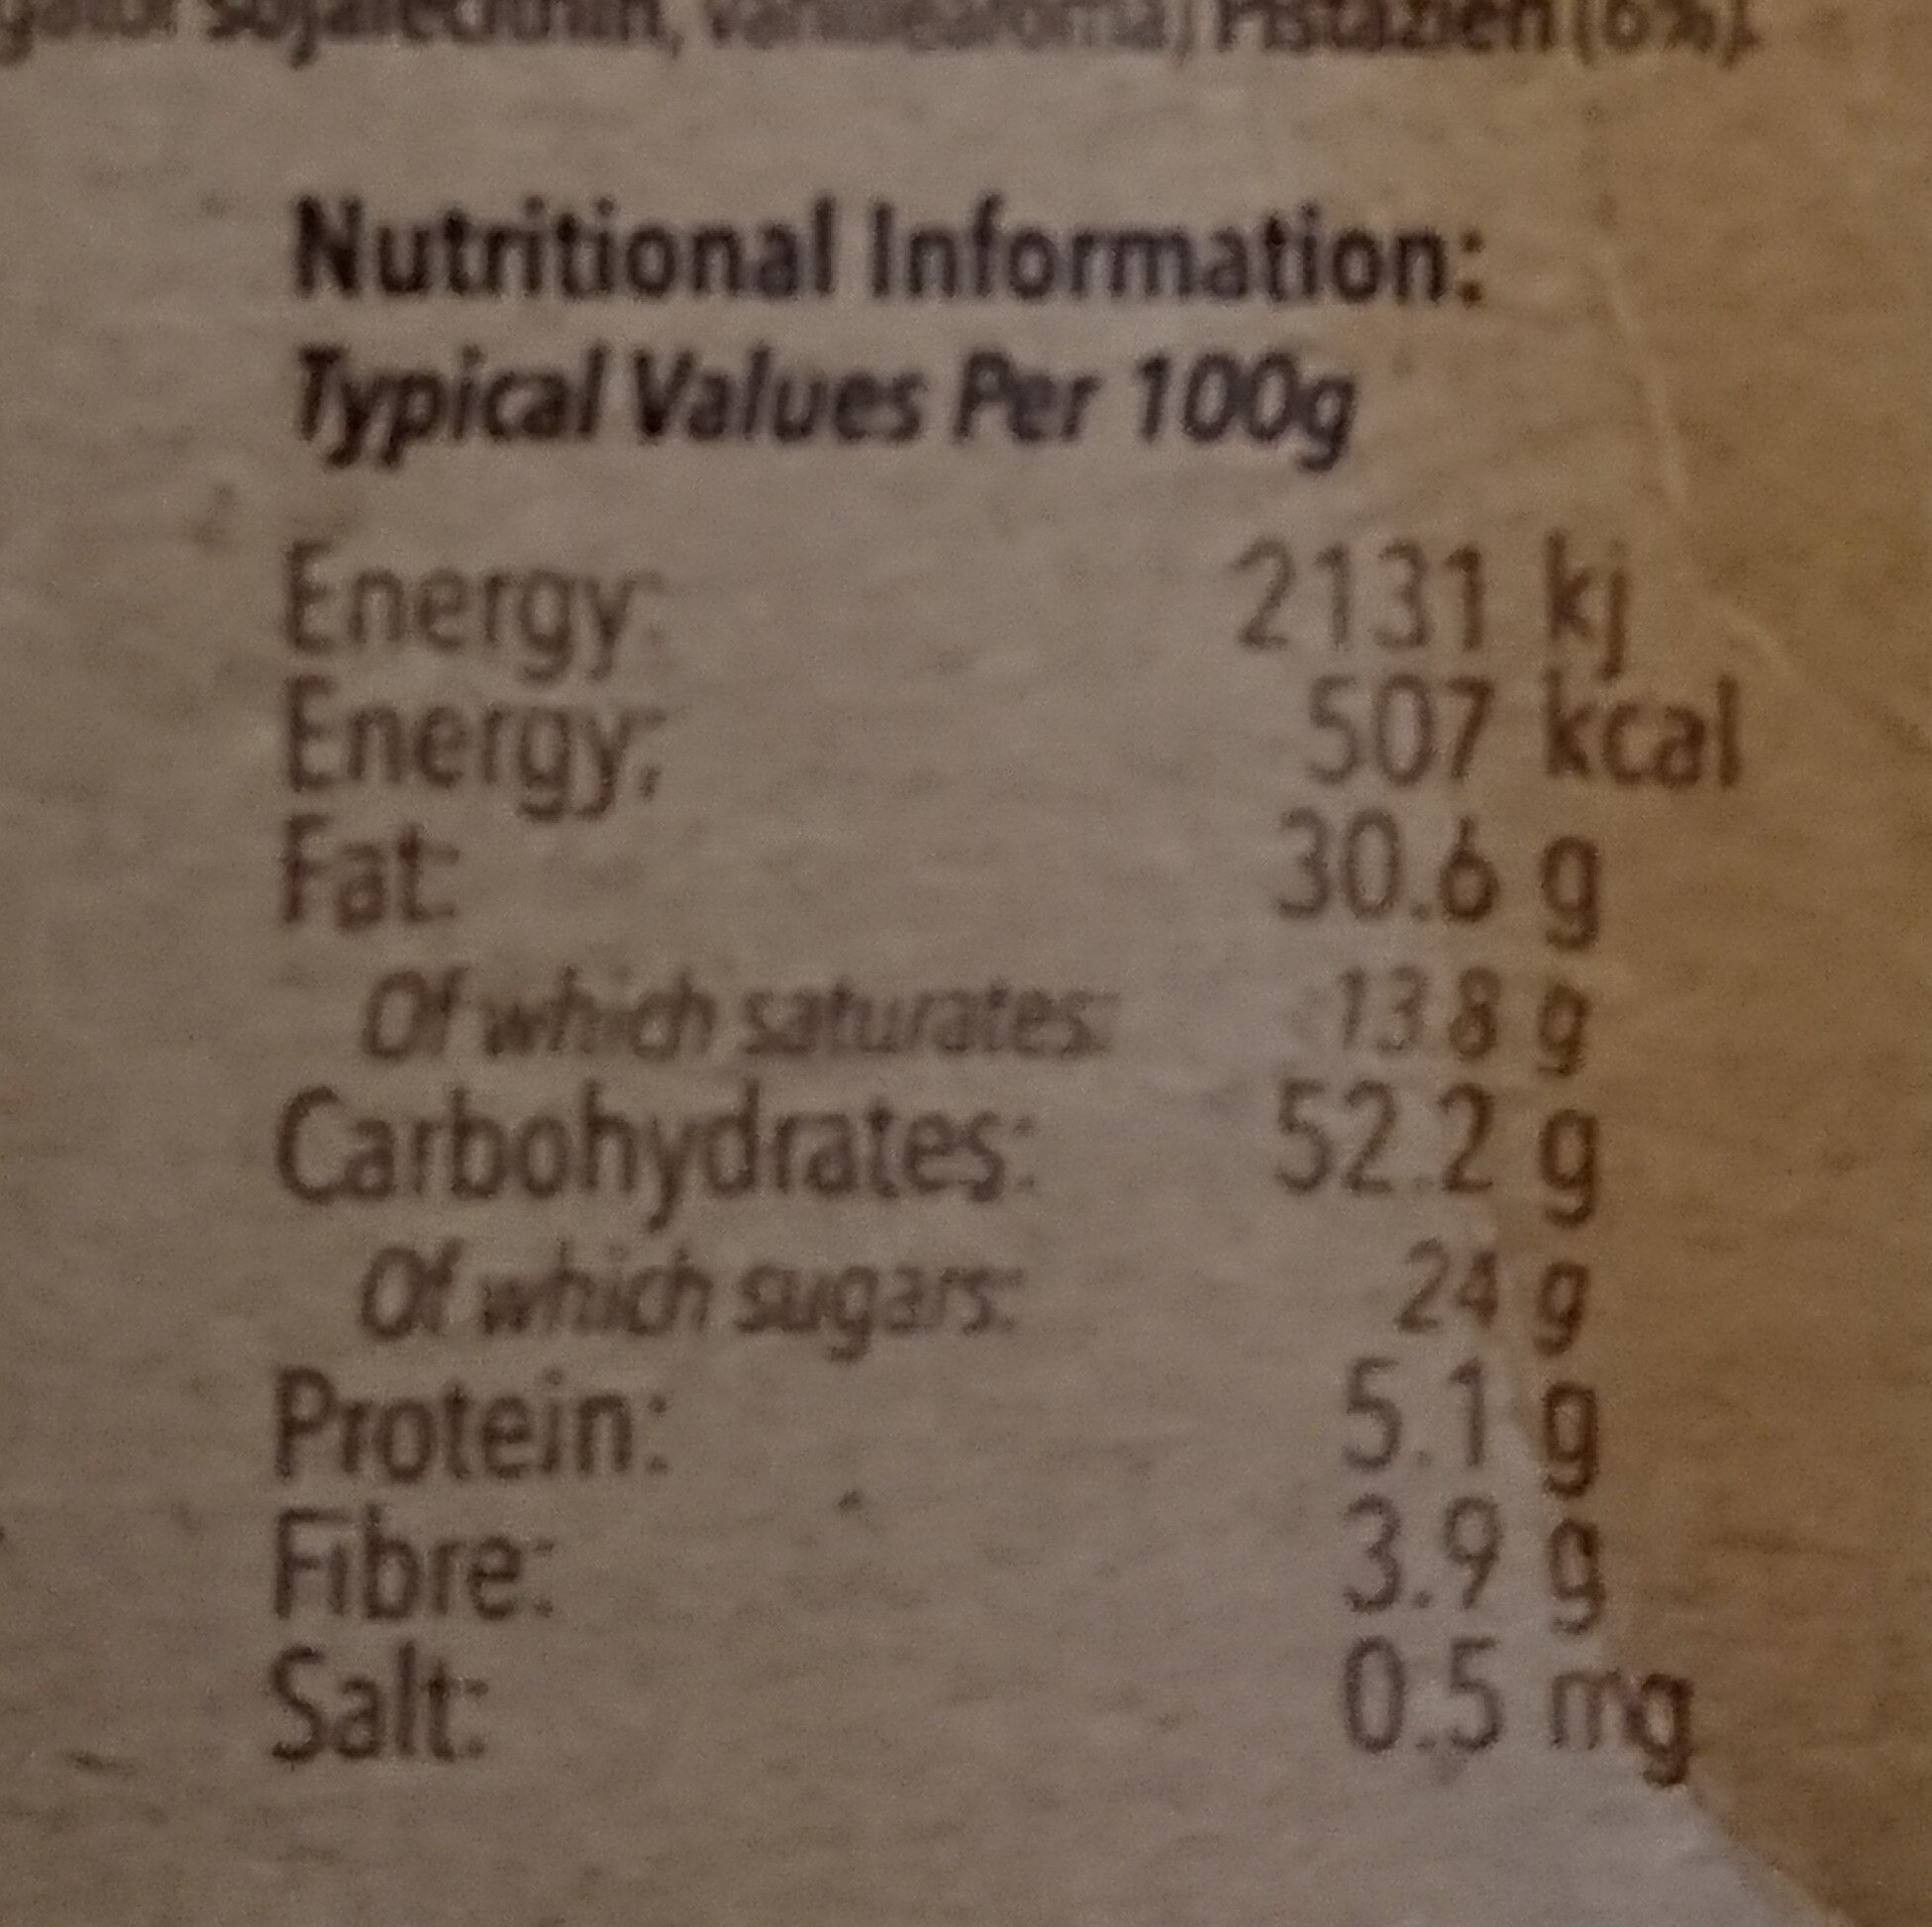 White Chocolate & Pistachio Cookie - Nutrition facts